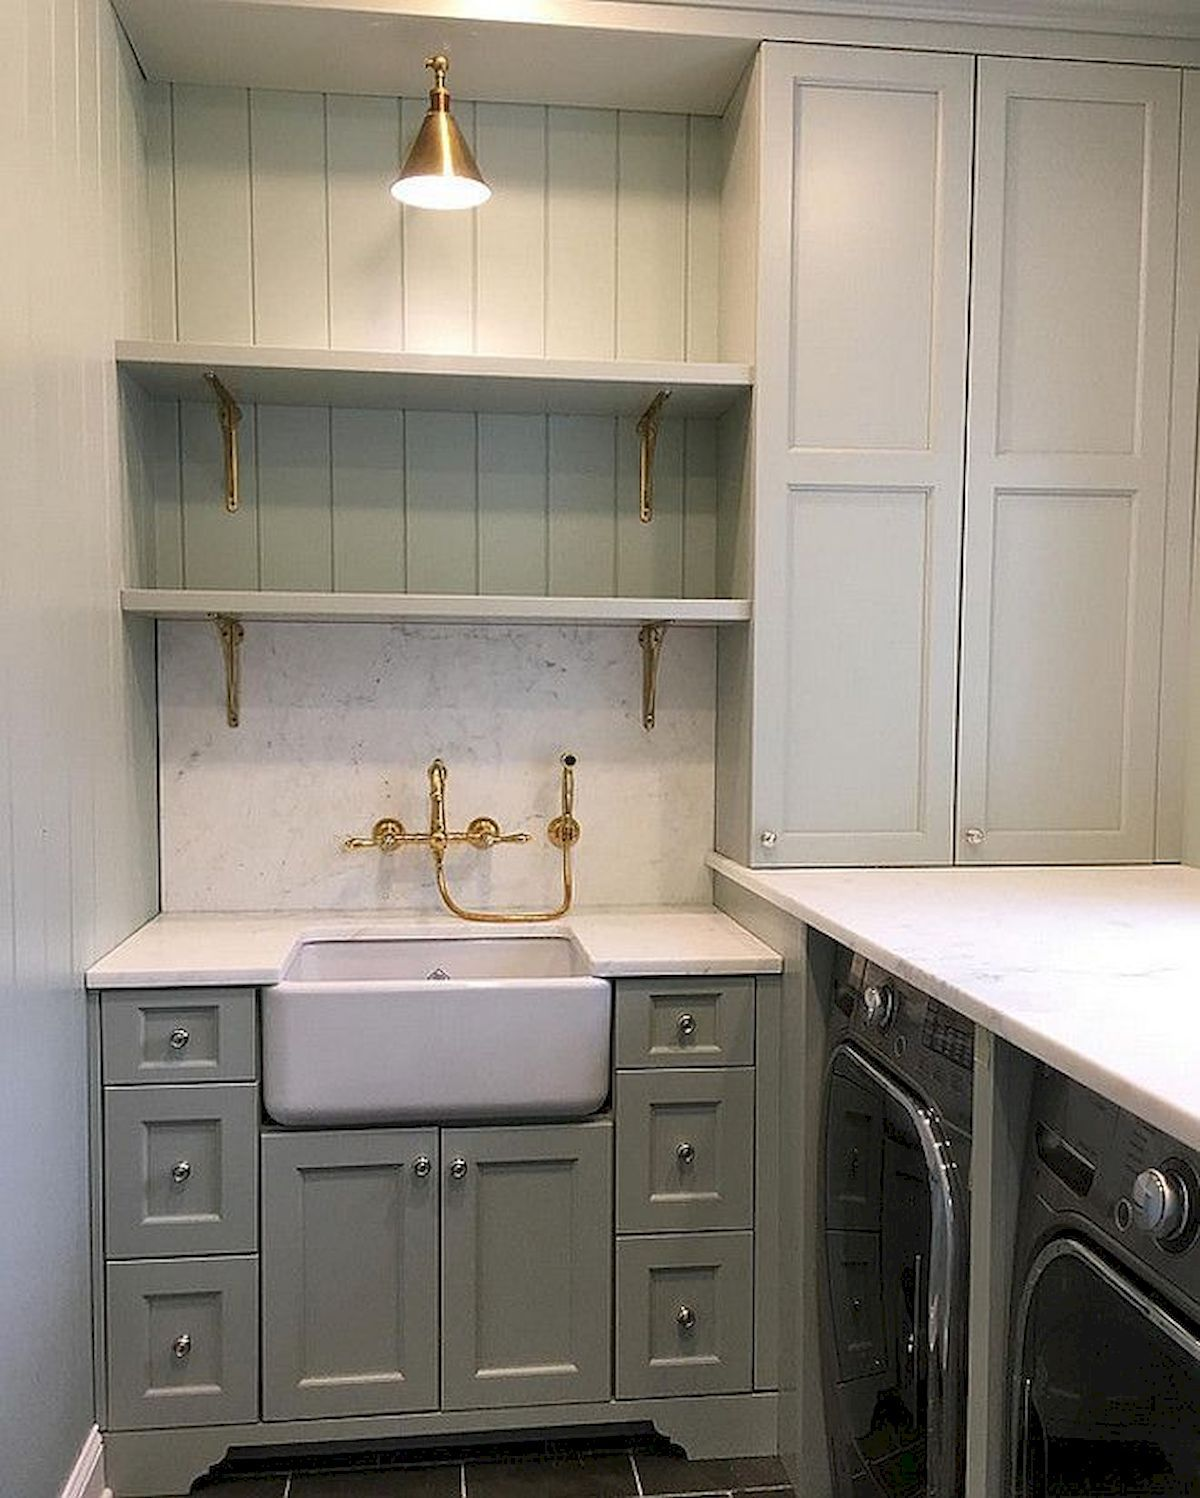 Marvelous Laundry Room With Best Storage Ideas images